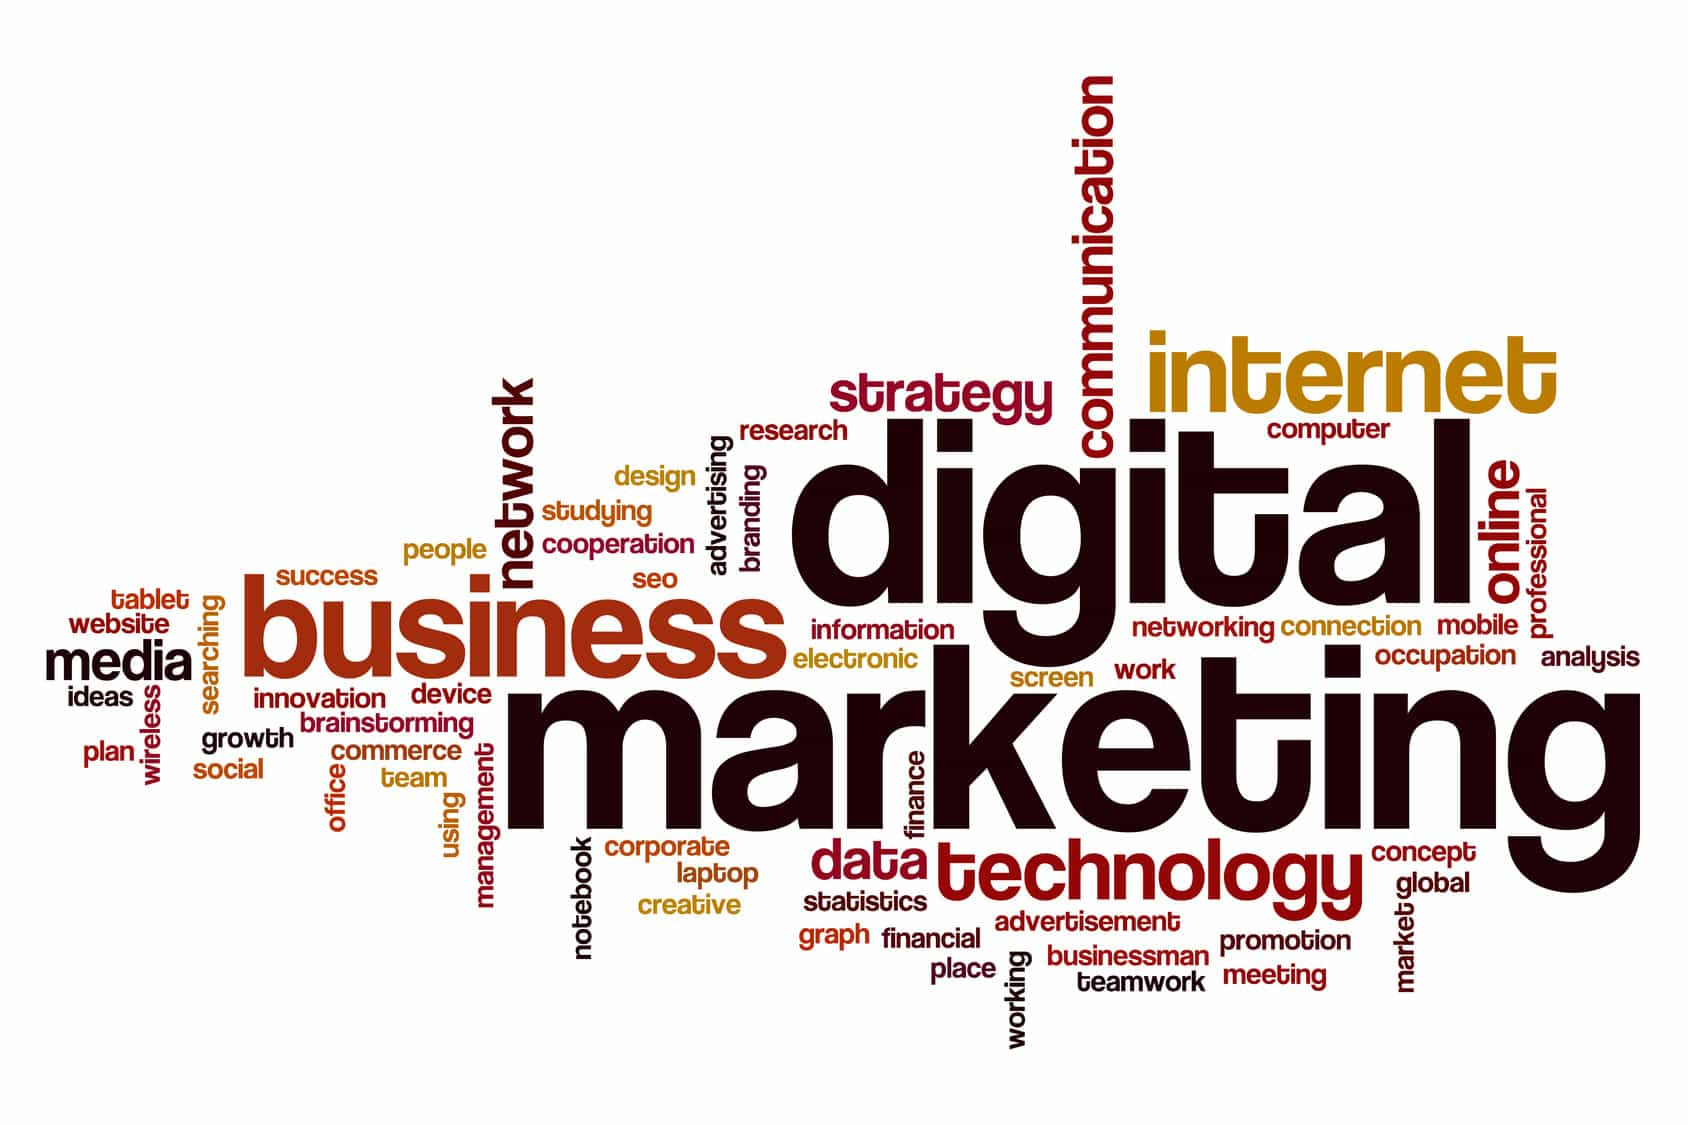 types-of-digital-marketing.jpg